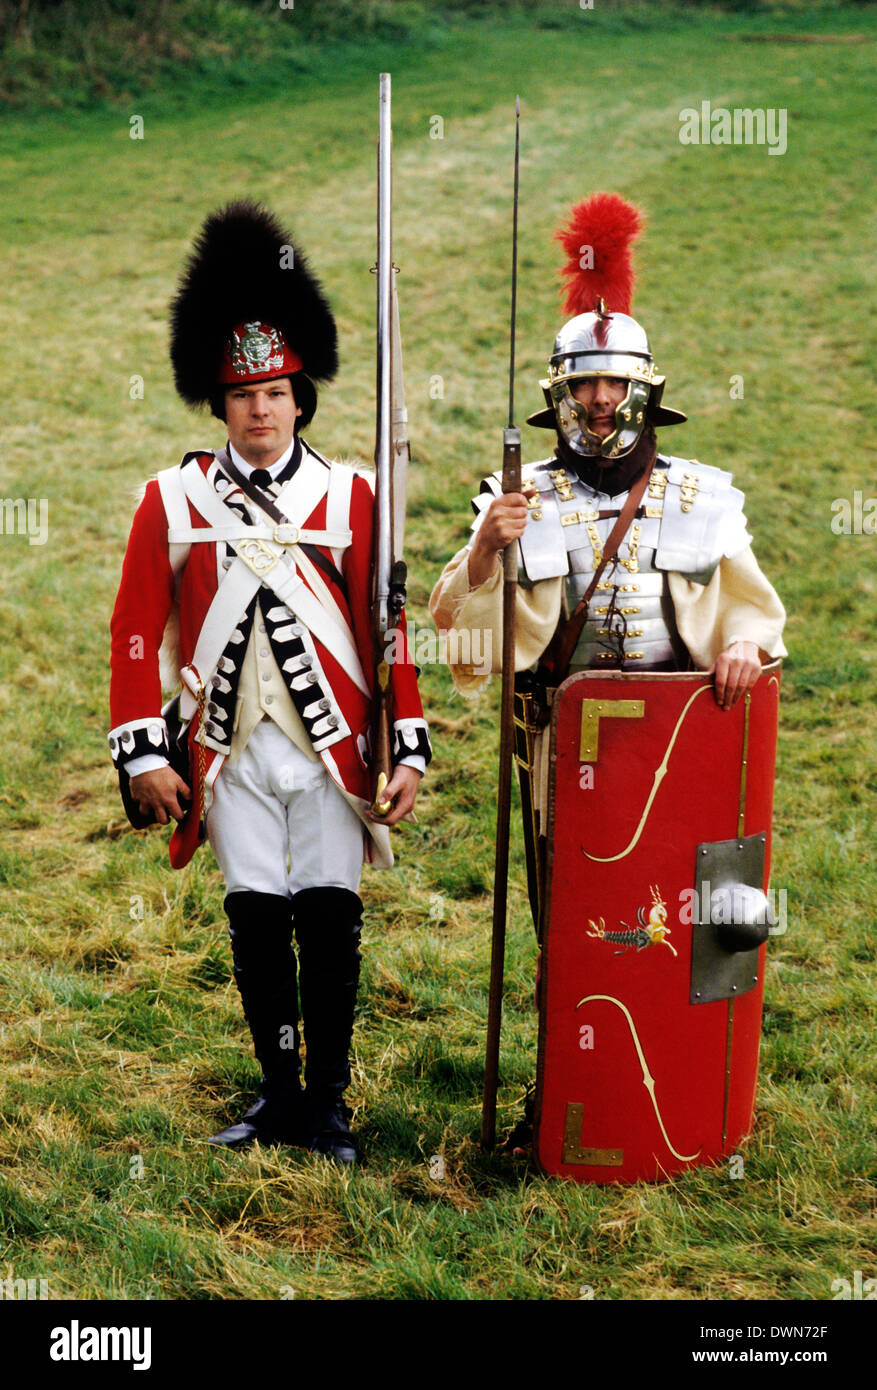 Soldiers in British History, 18th century foot soldier and 2nd century Roman, historical re-enactment multi periods period, through the ages - Stock Image